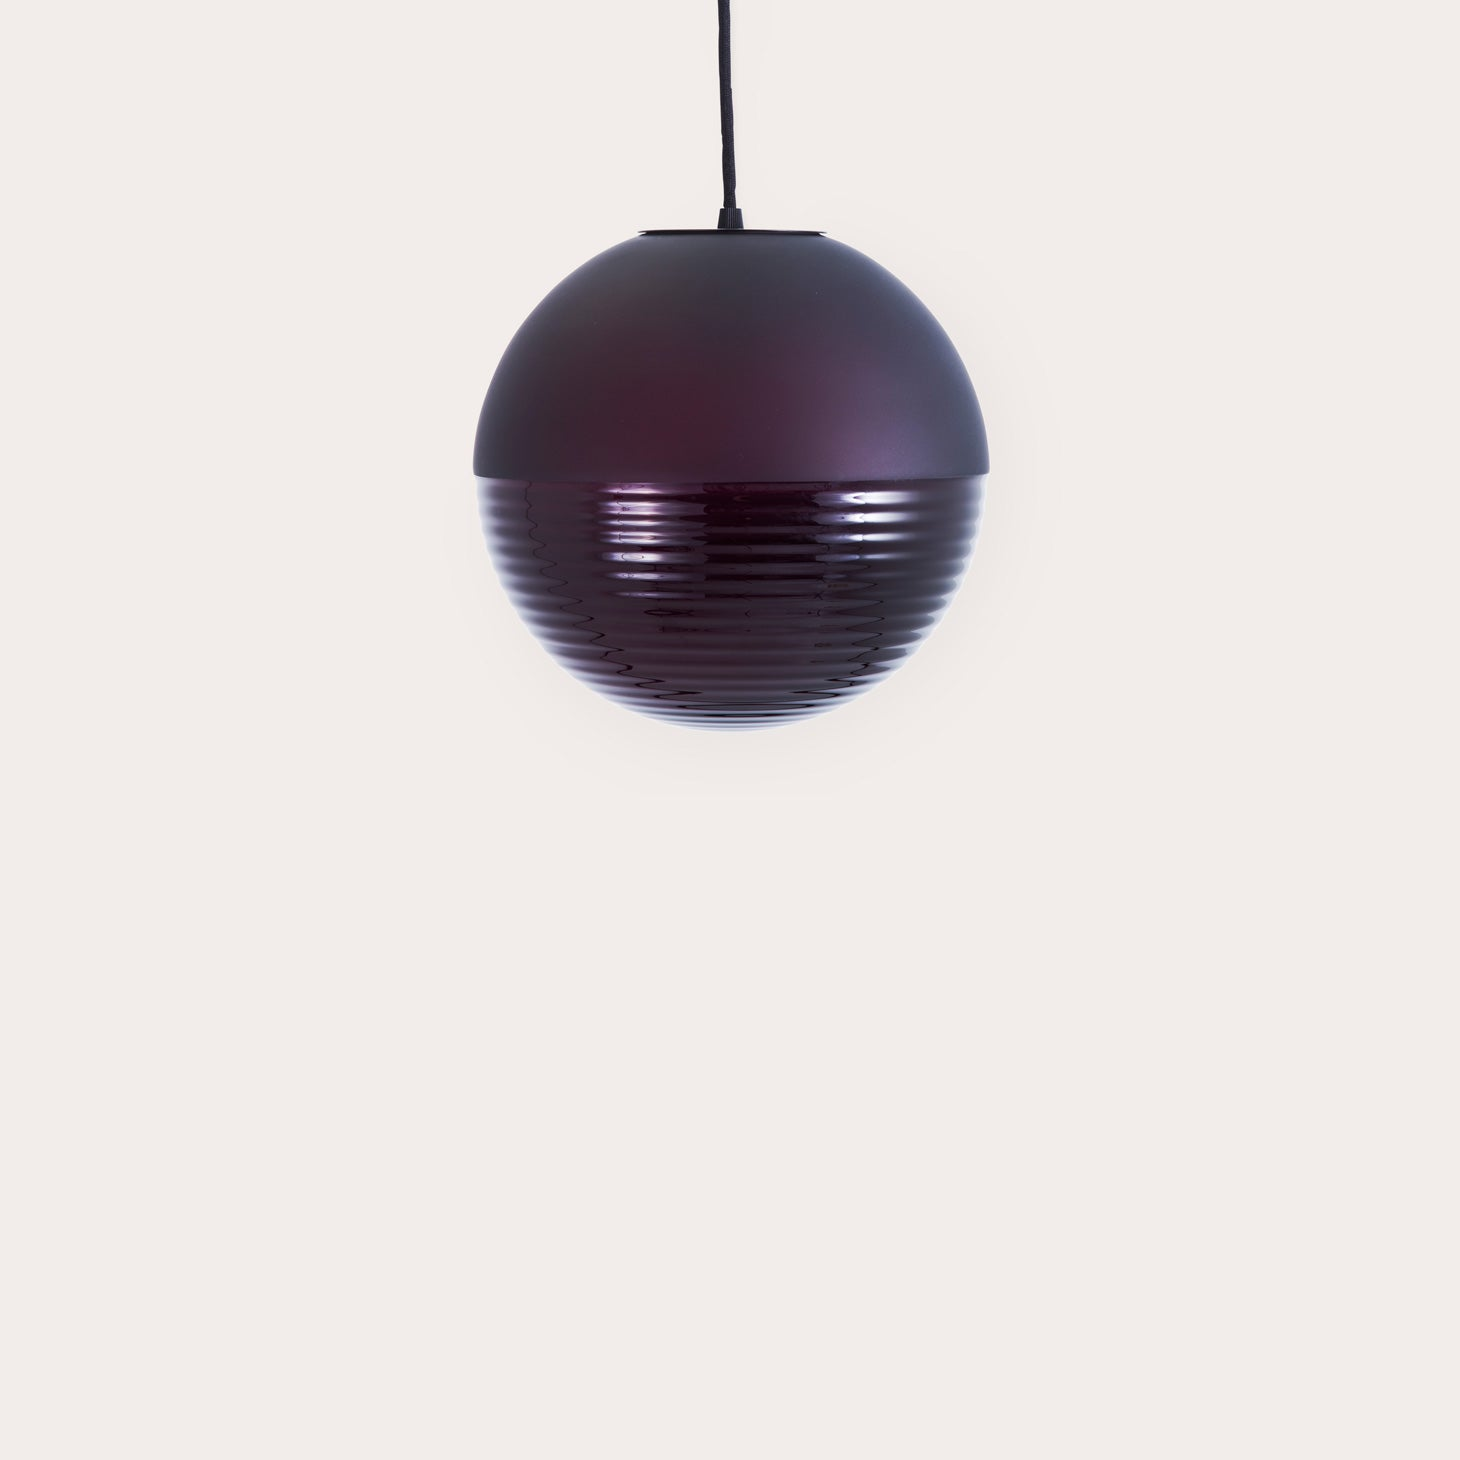 Stellar Small Lighting Sebastian Herkner Designer Furniture Sku: 747-160-10044